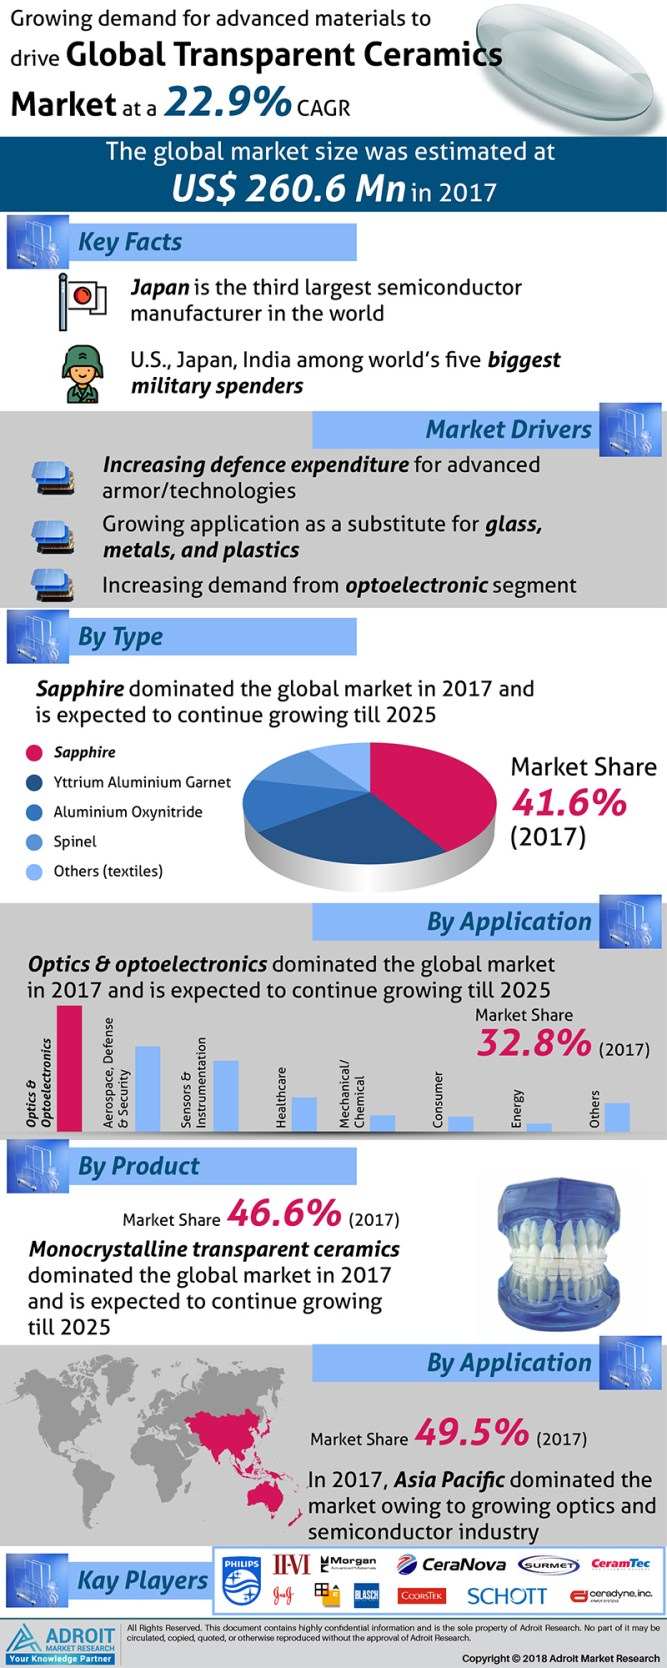 Transparent Ceramics Market 2019-2025 Analysis by Growing Demand, Raw Materials, Lasers & Night Vision, Latest Trends, Key Companies Profile, Business Opportunity and Forecast